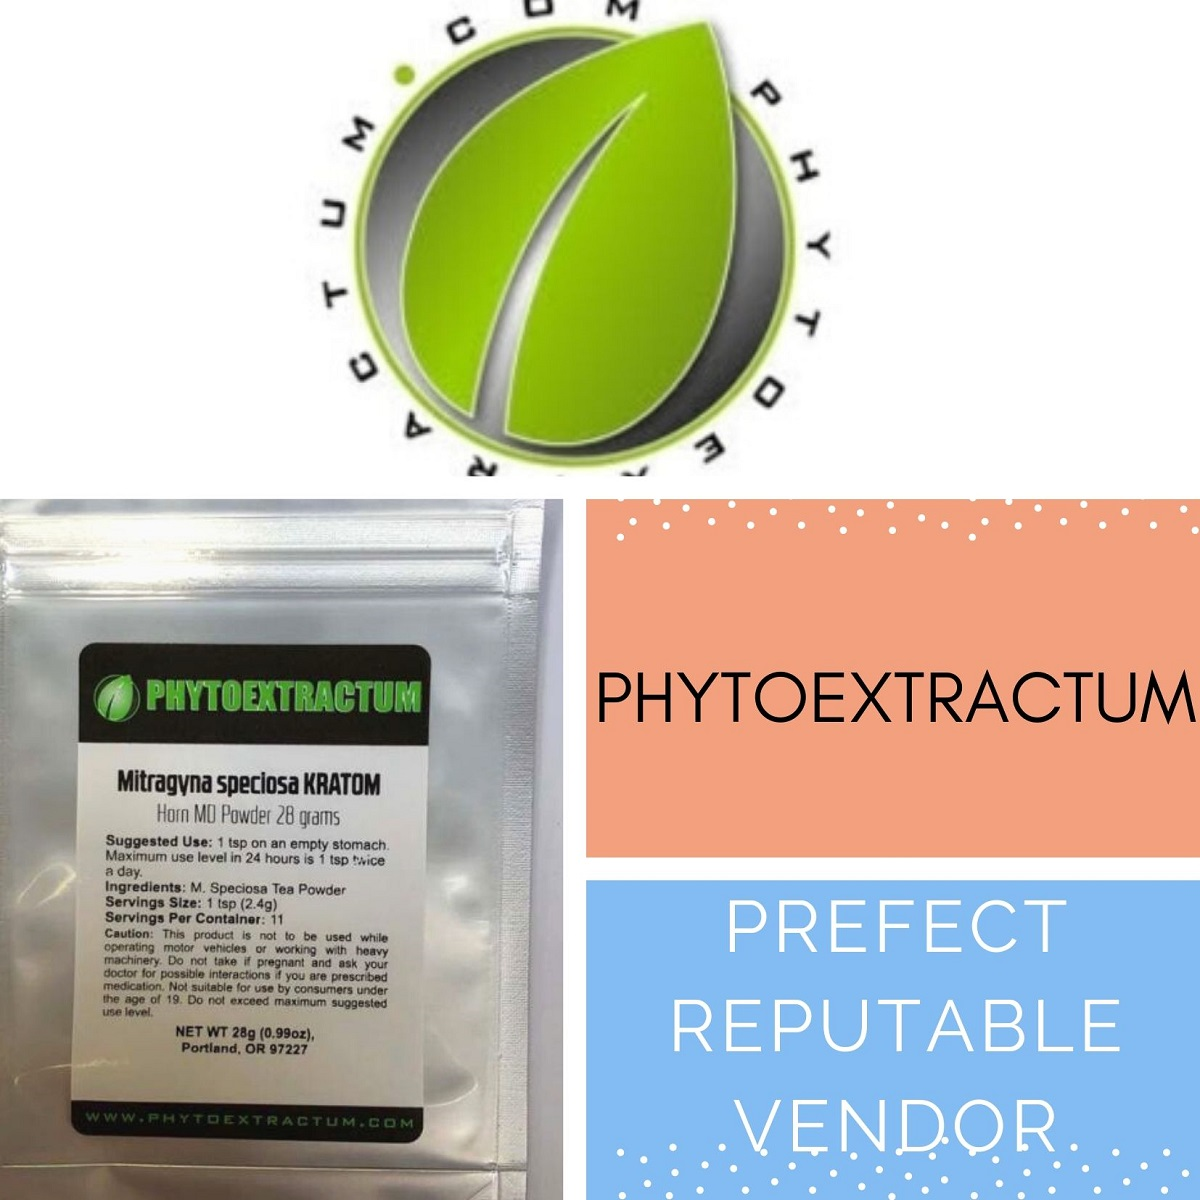 Phytoextractum Review